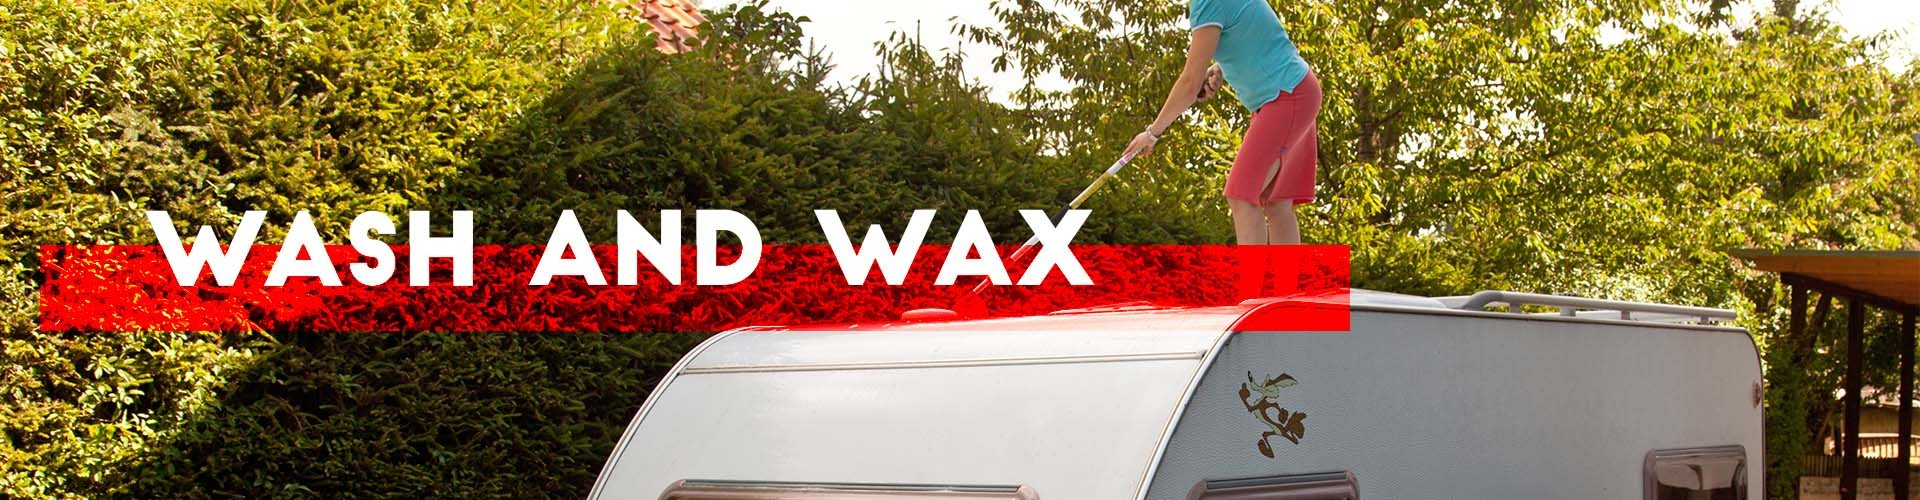 wash and wax your rv